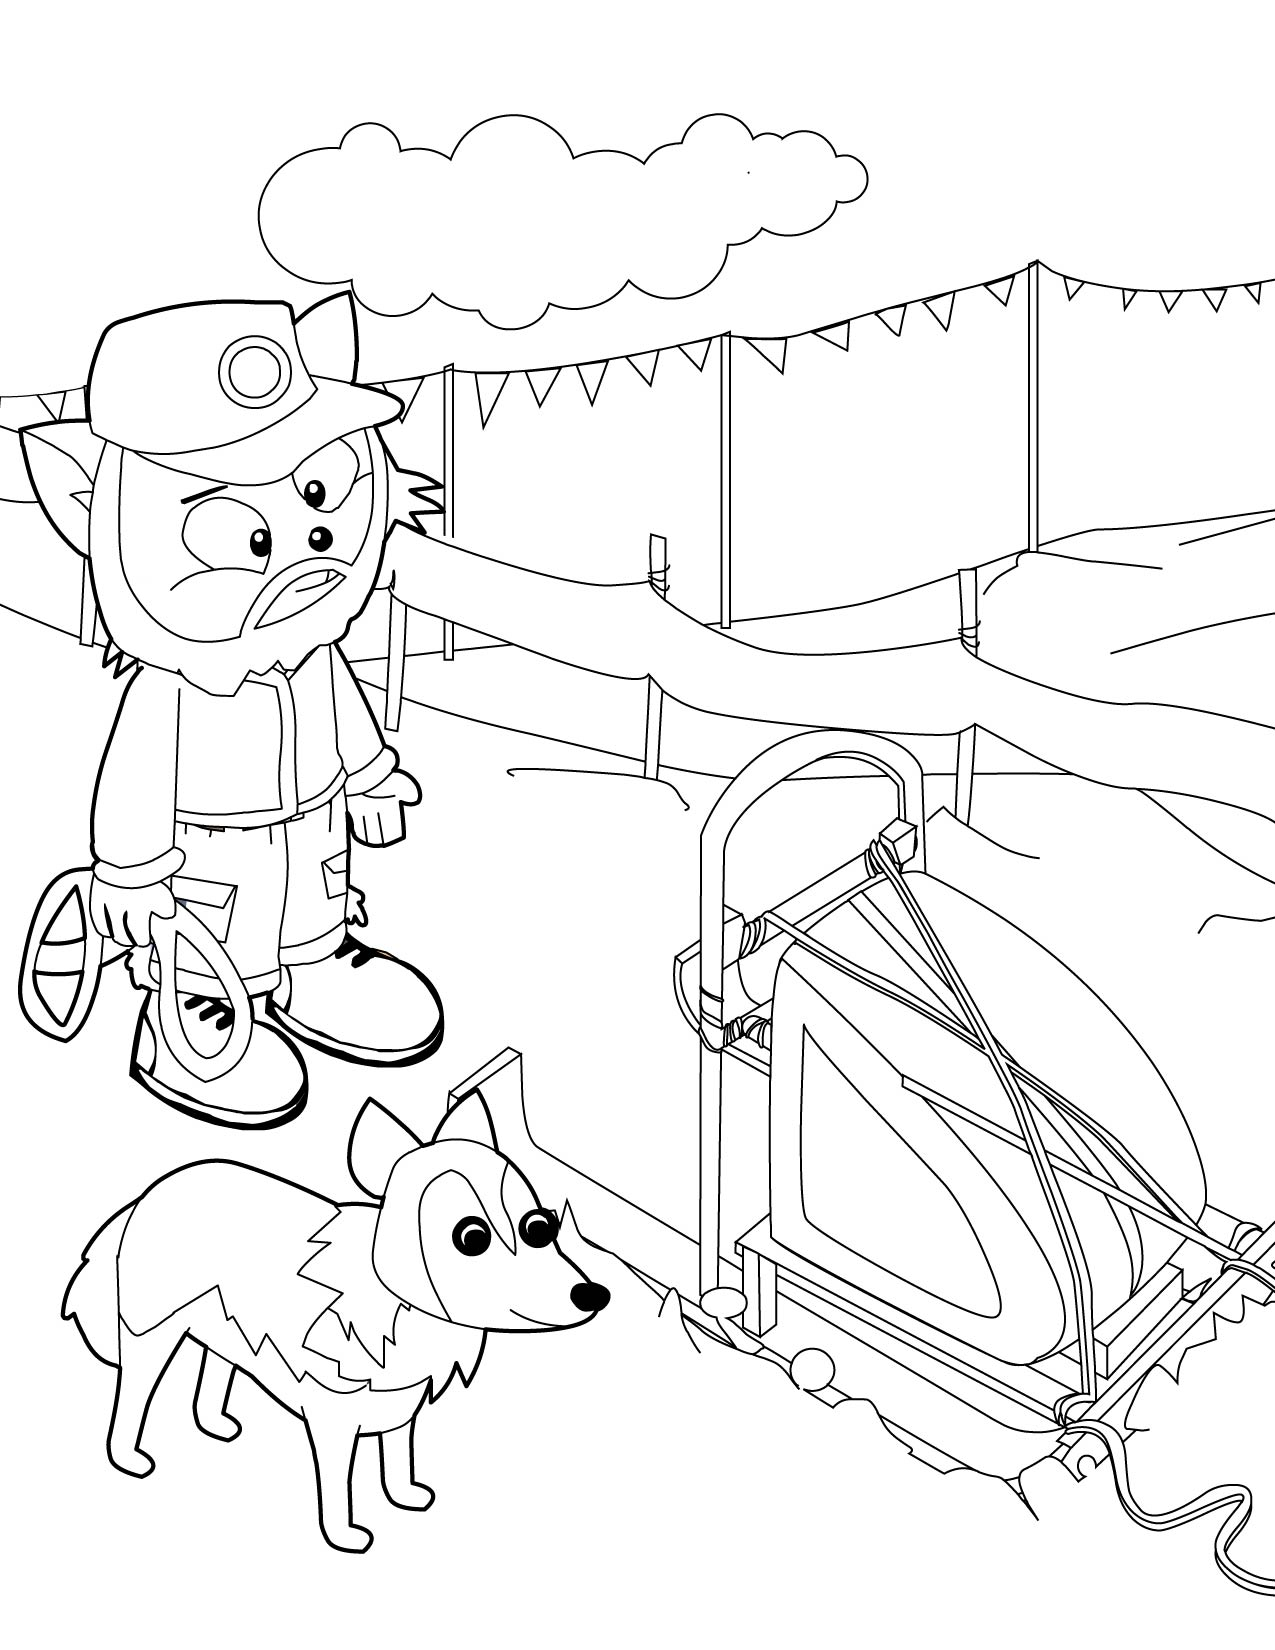 Dog Sled Race Coloring Pages Iditarod Coloring Pages